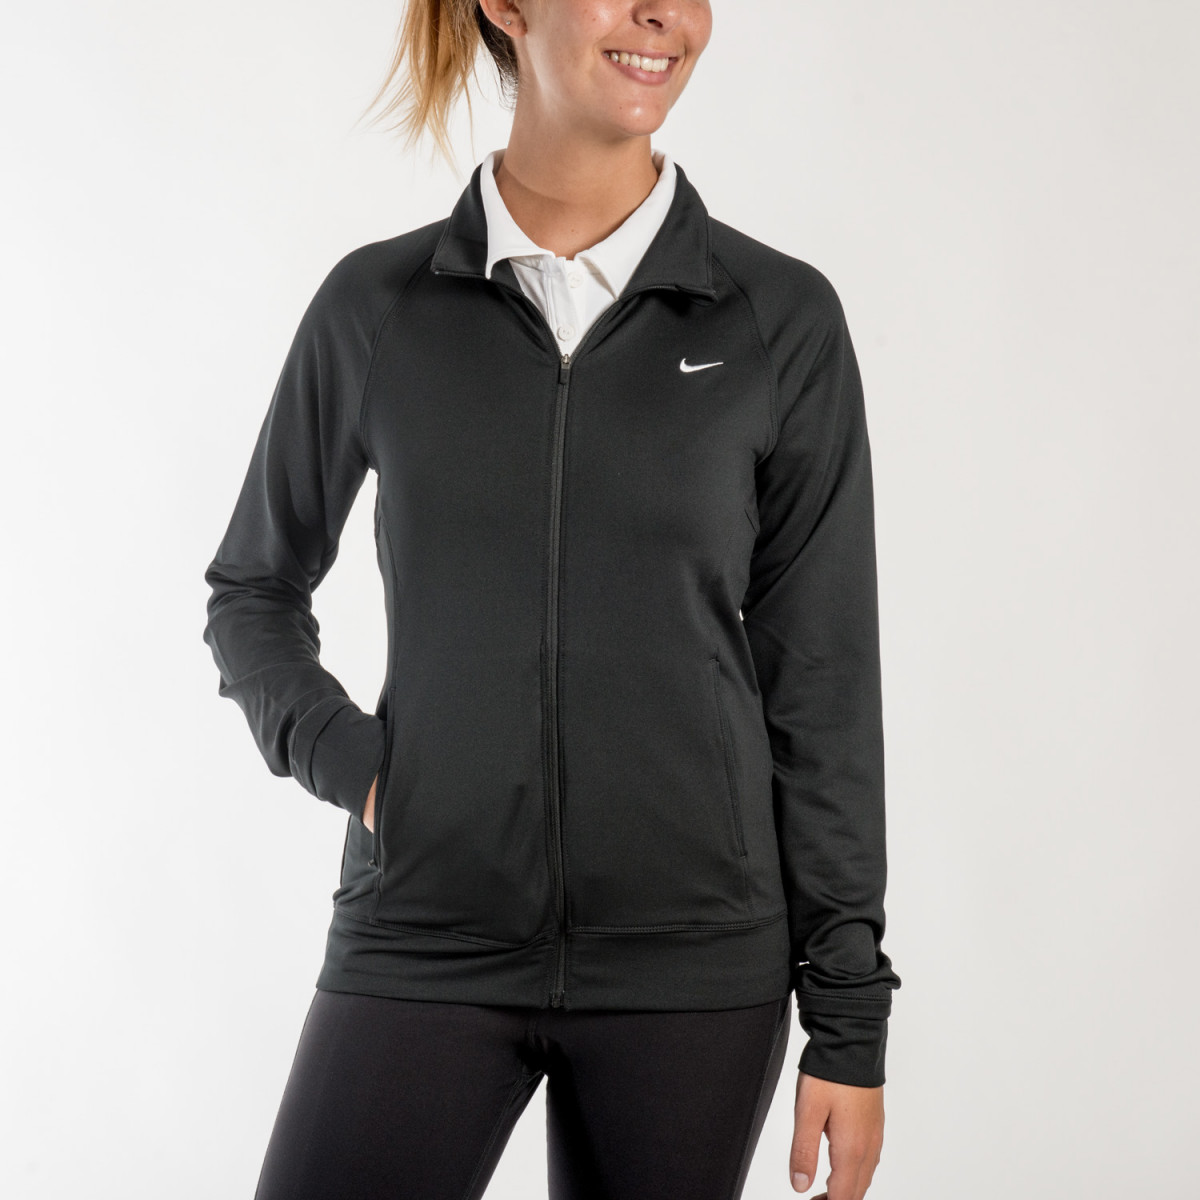 CAMPERA NIKE L2 SEASONAL KNIT